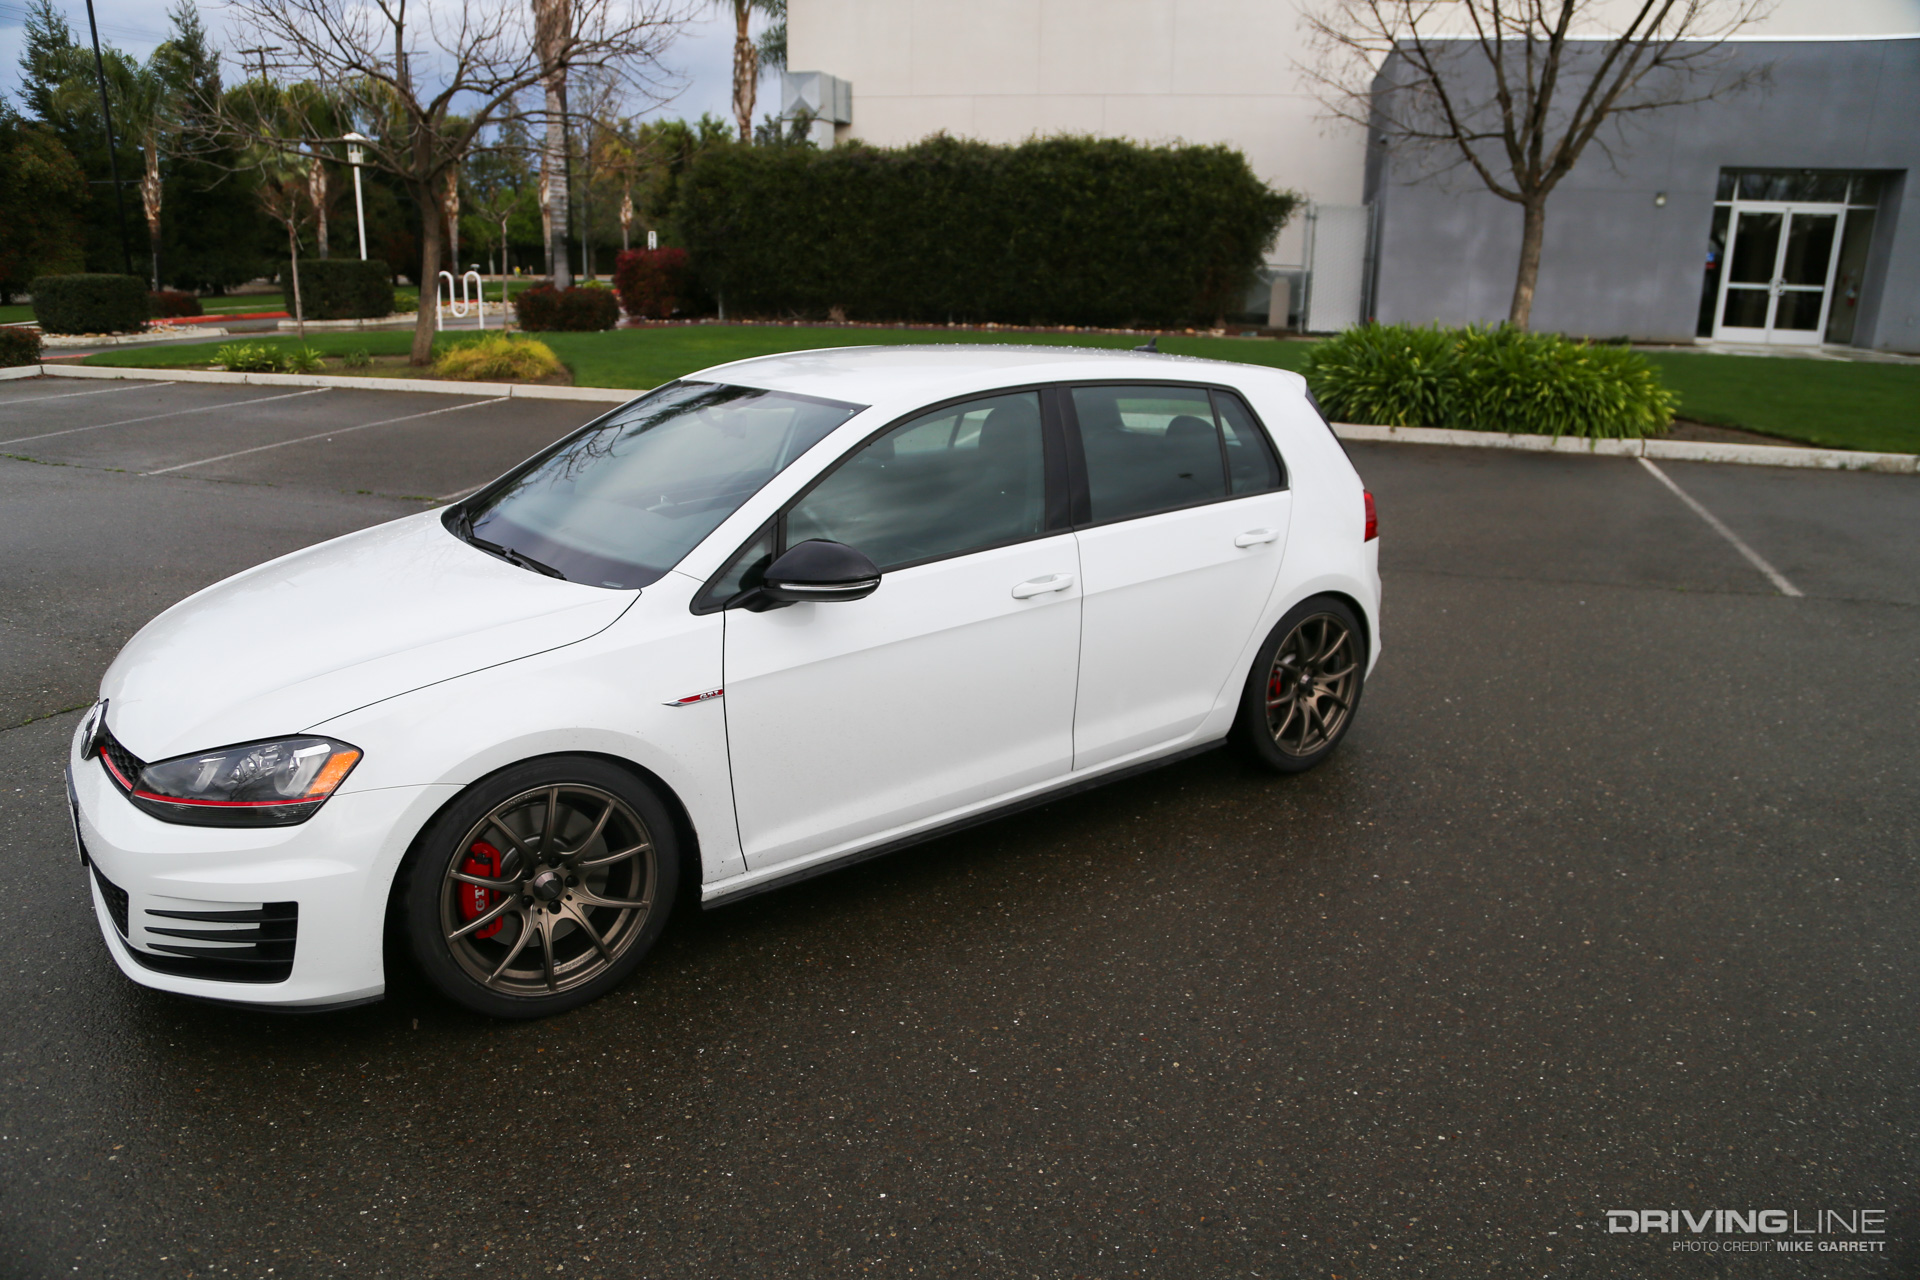 2018 Volkswagen Gti Review >> A Touch of JDM: WedsSport Wheels & Nitto NT05s for the Mk7 Golf GTI | DrivingLine